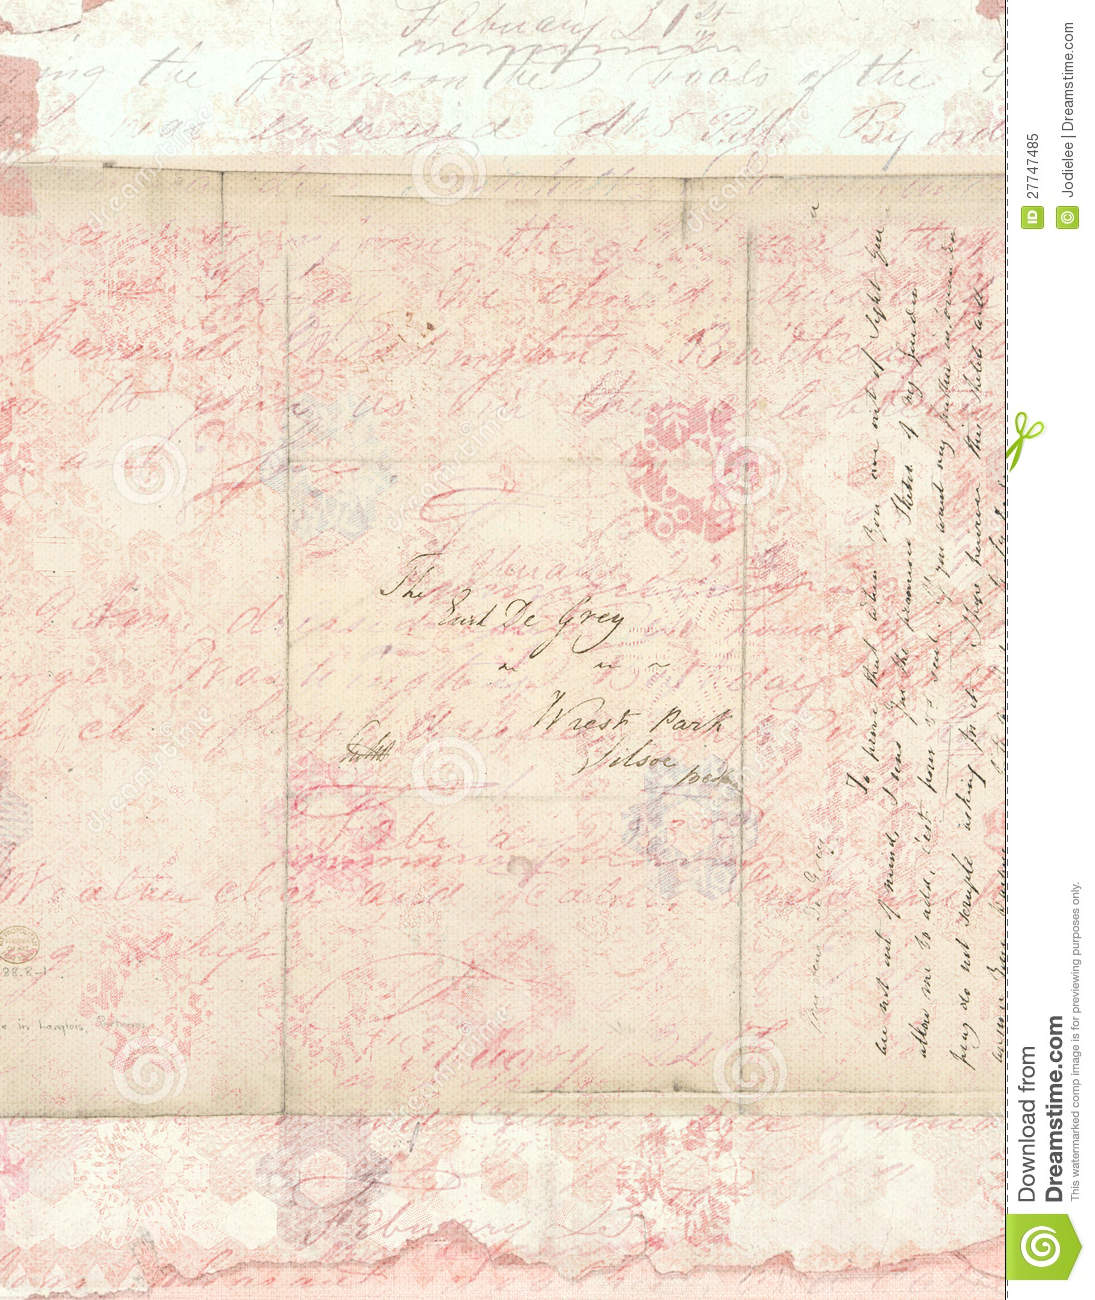 Shabby Chic Vintage Floral Background With Script Flowers Stationary